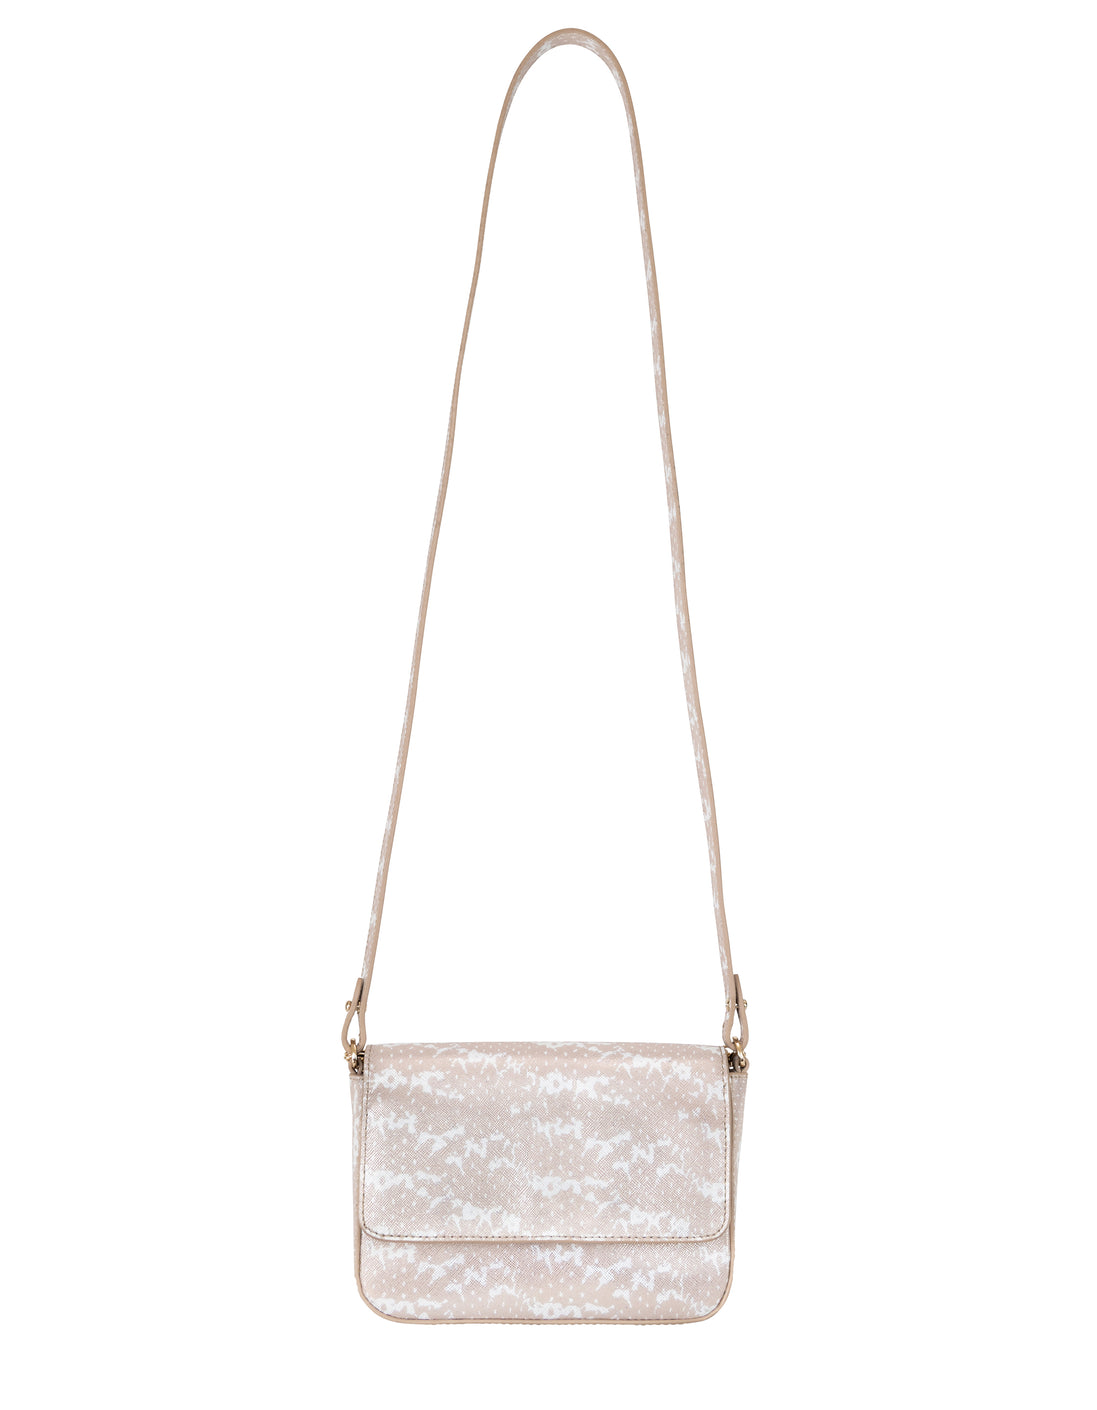 Kiss Kiss Crossbody in Blush & Pearl Saffie